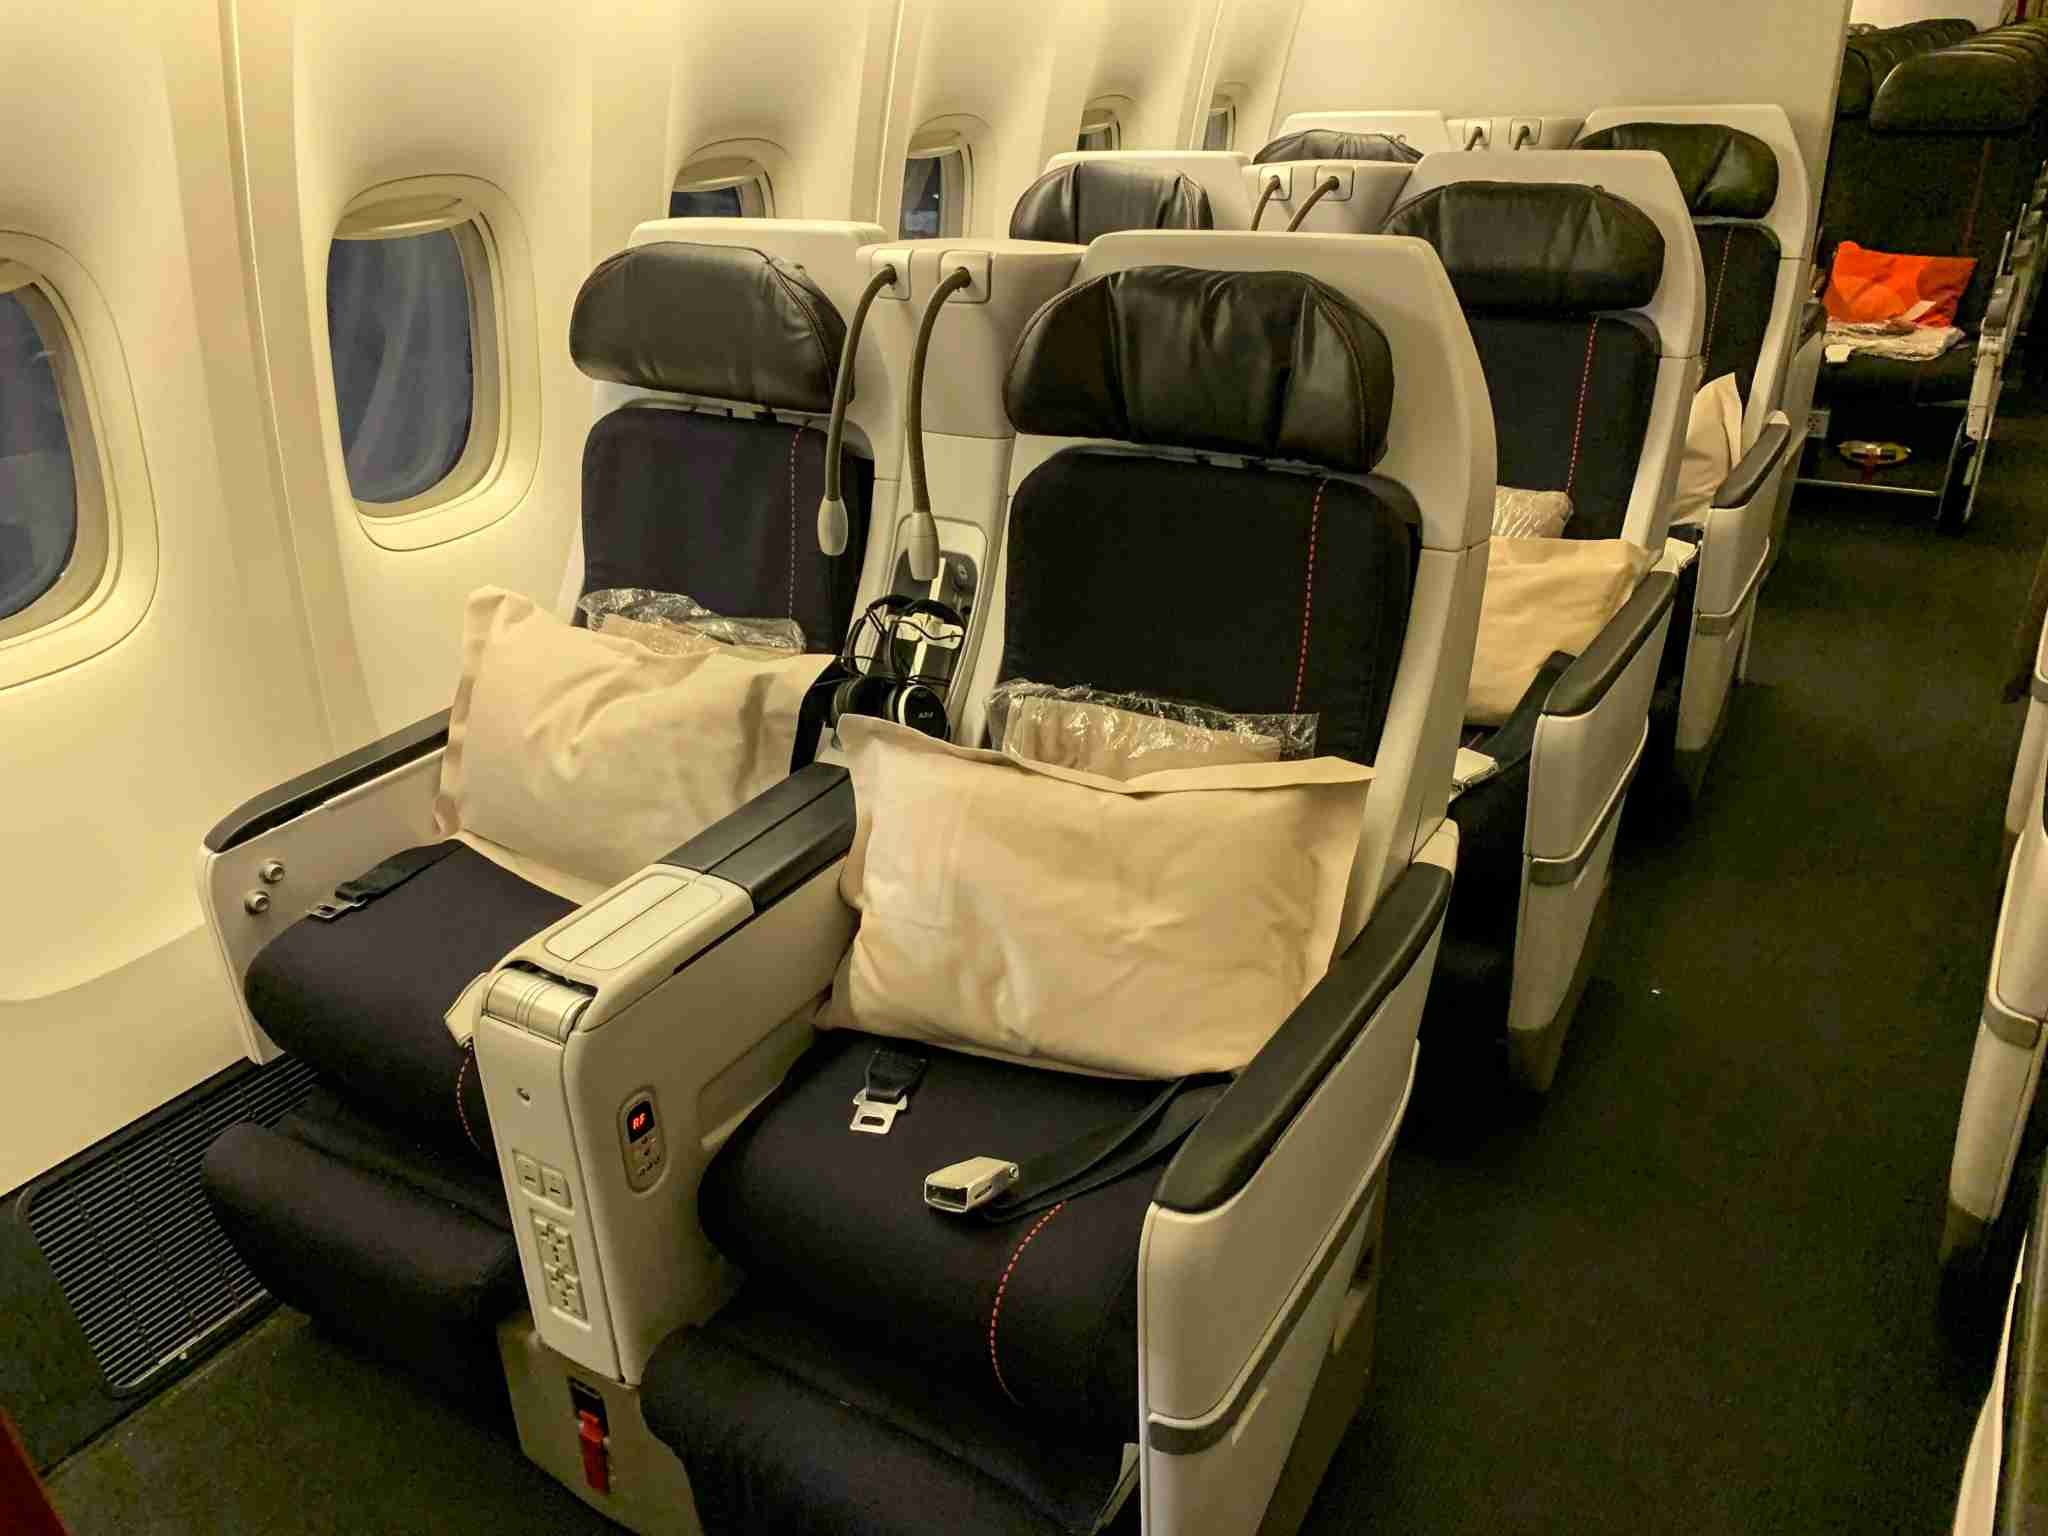 Air France Boeing 777-200 Premium Economy Window Duo Seating